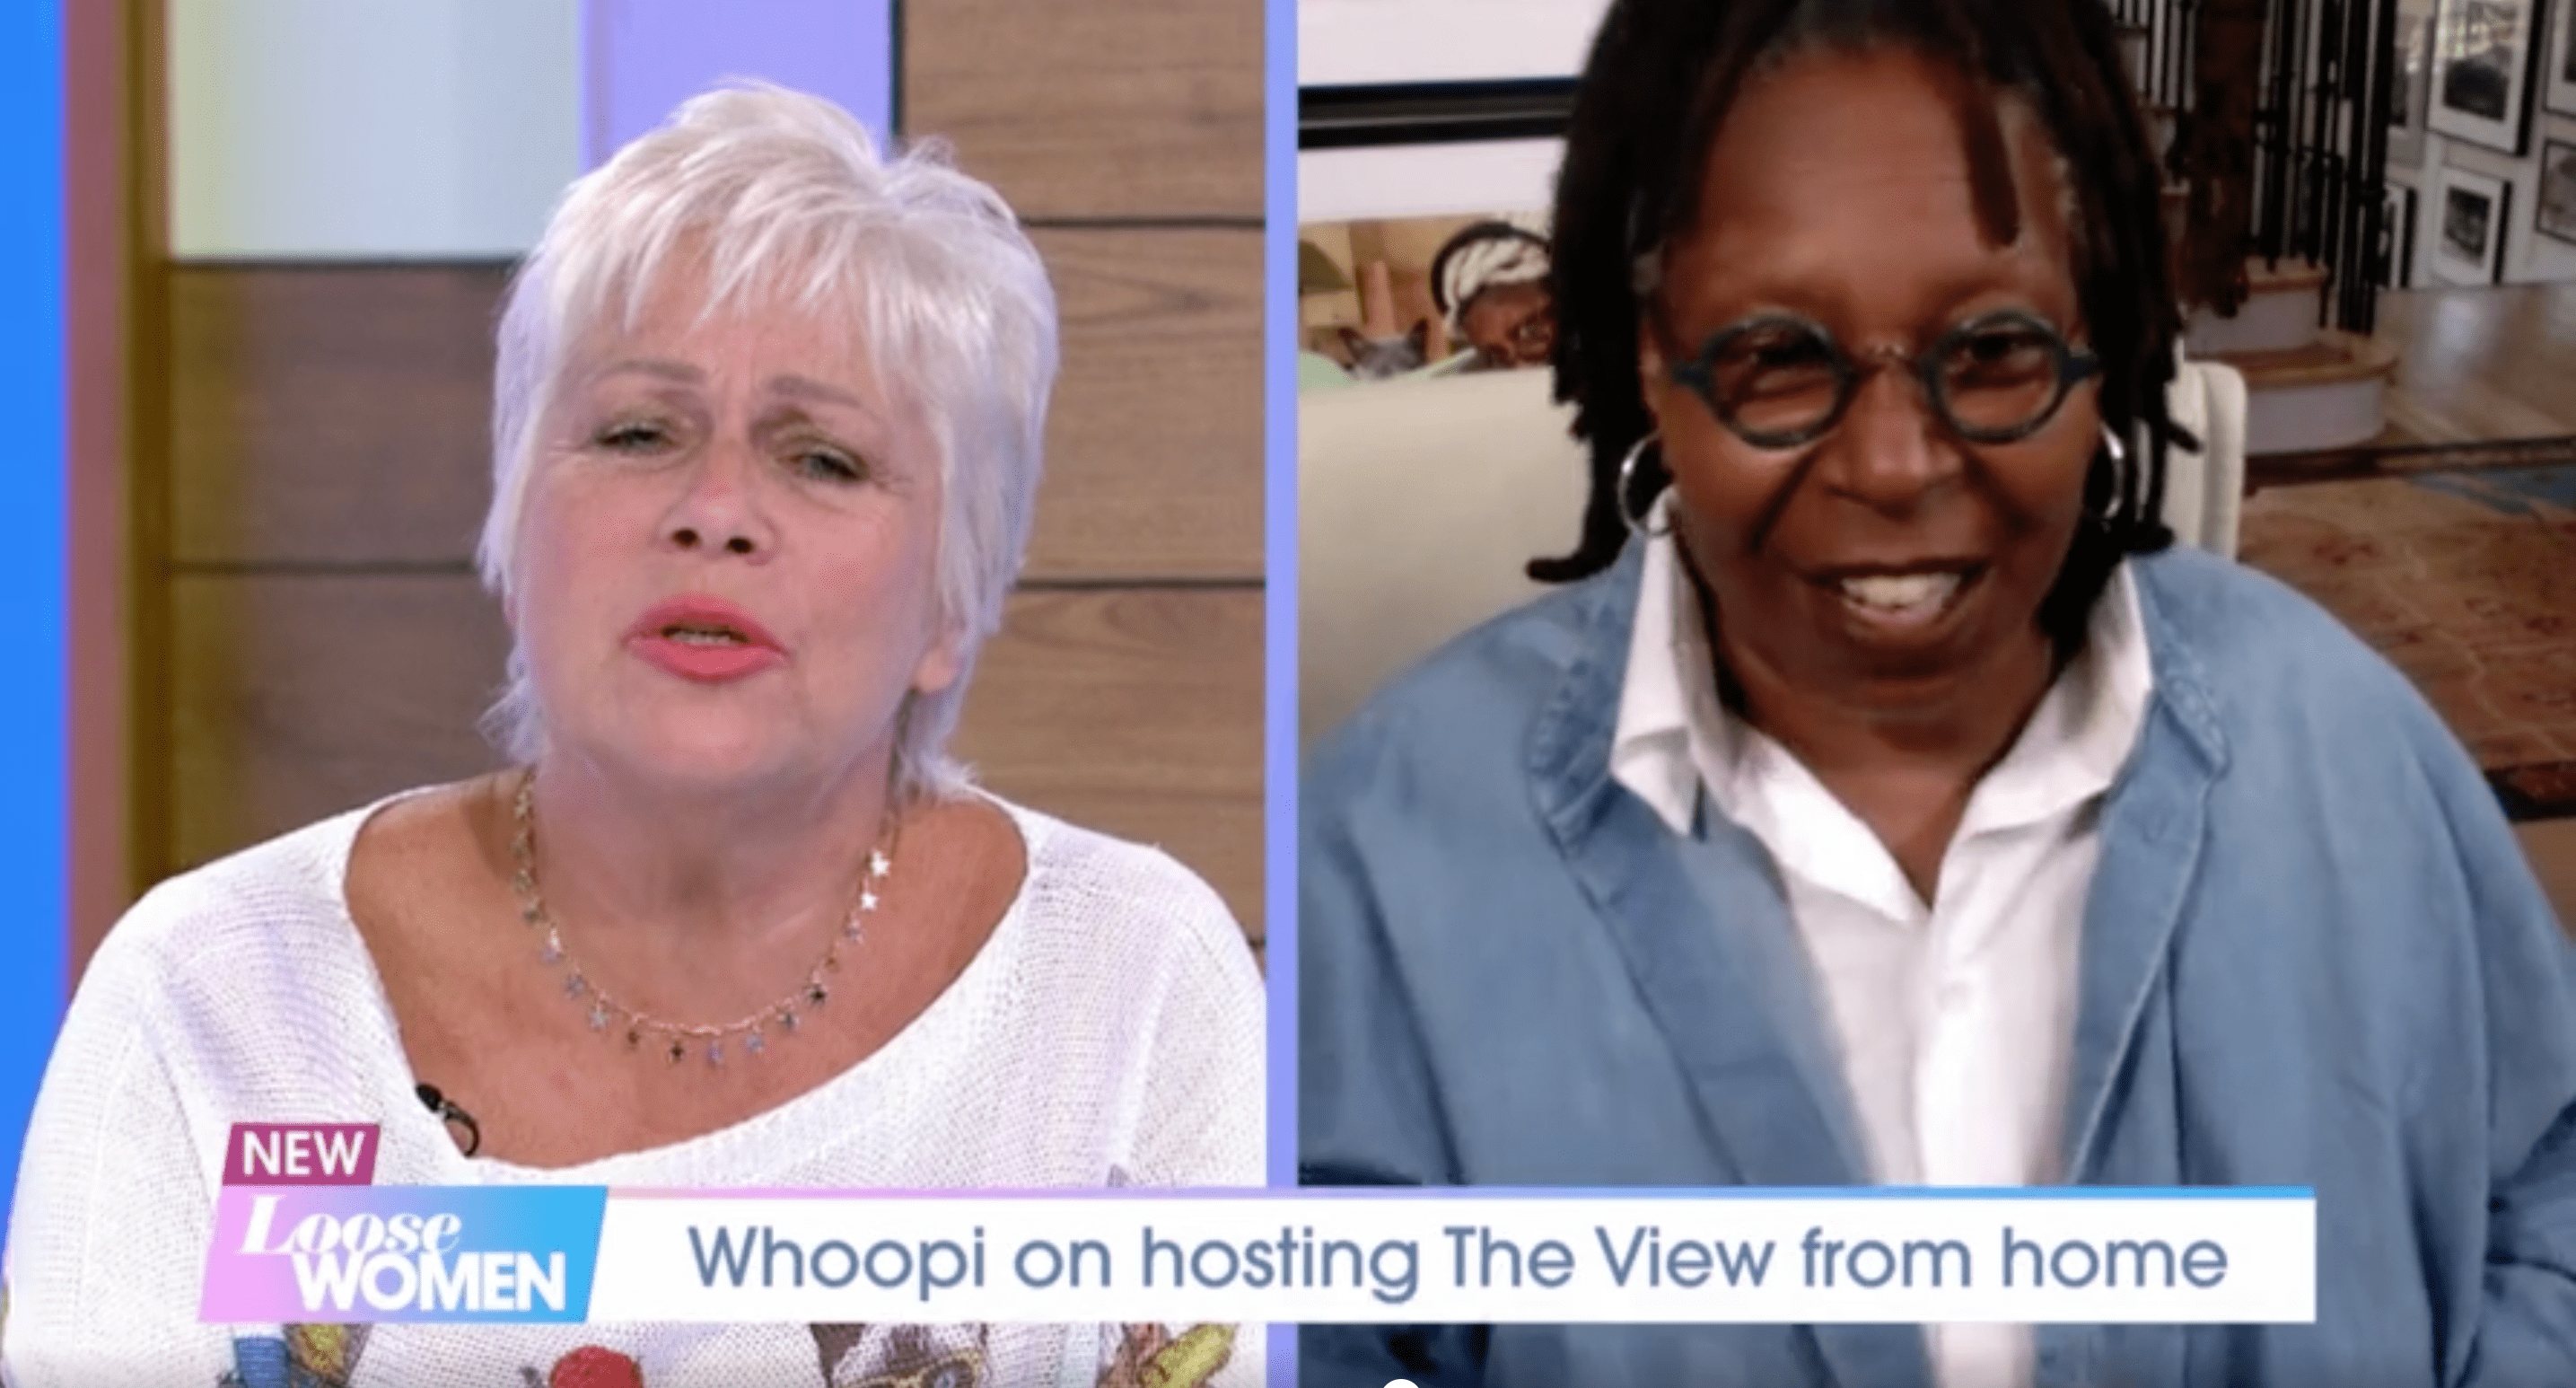 Whoopi Goldberg tells Loose Women she thinks her pneumonia and sepsis ordeal was 'some form of Covid-19'